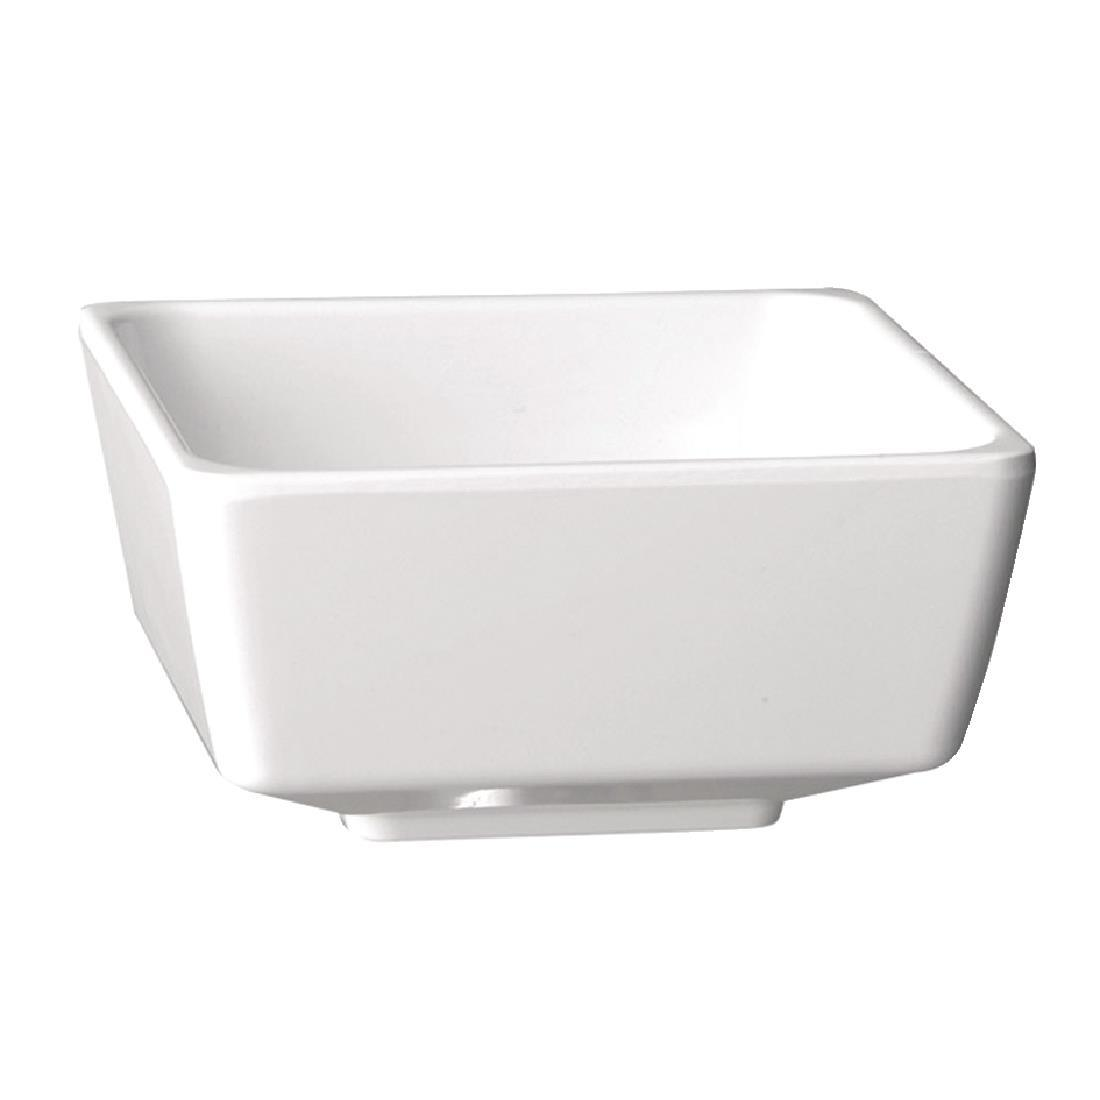 GF094 - APS Float White Square Bowl 5in - Each - GF094